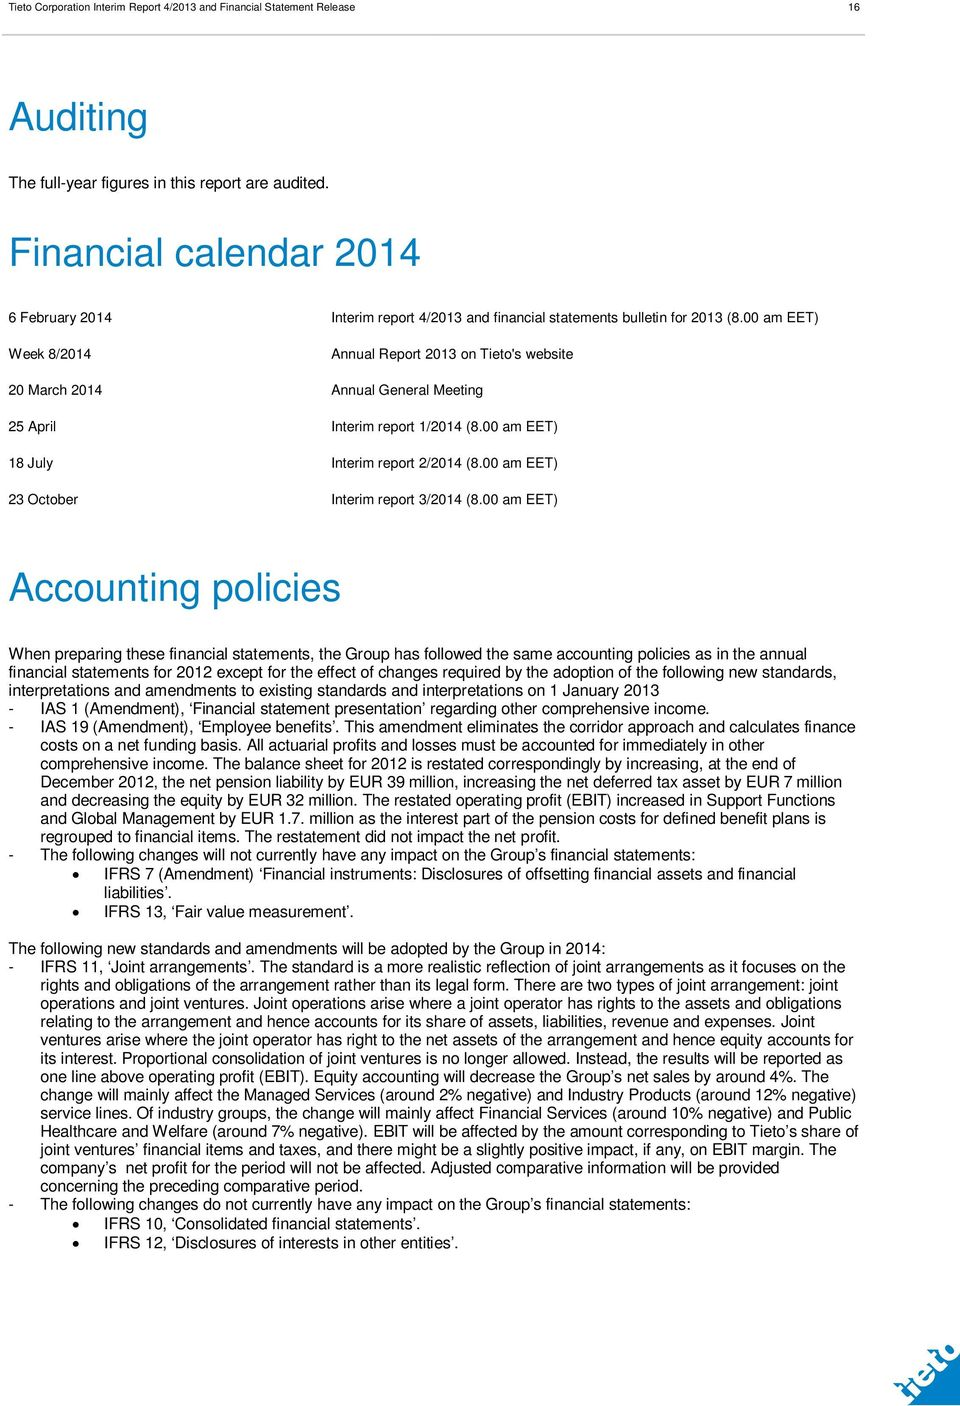 00 am EET) Week 8/2014 Annual Report on Tieto's website 20 March 2014 Annual General Meeting 25 April Interim report 1/2014 (8.00 am EET) 18 July Interim report 2/2014 (8.